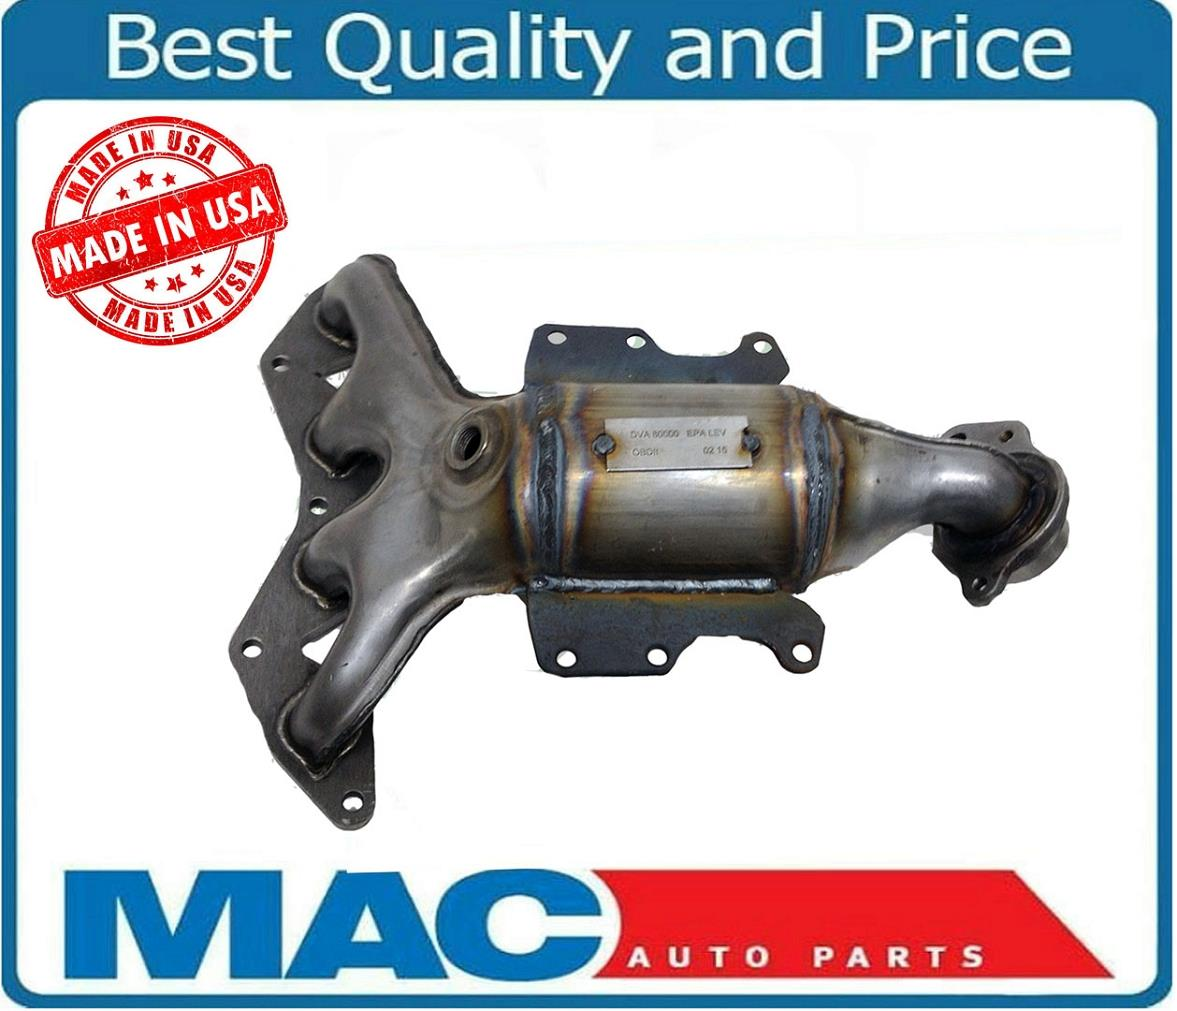 Manifold Catalytic Converter with Gasket for Honda Civic ...